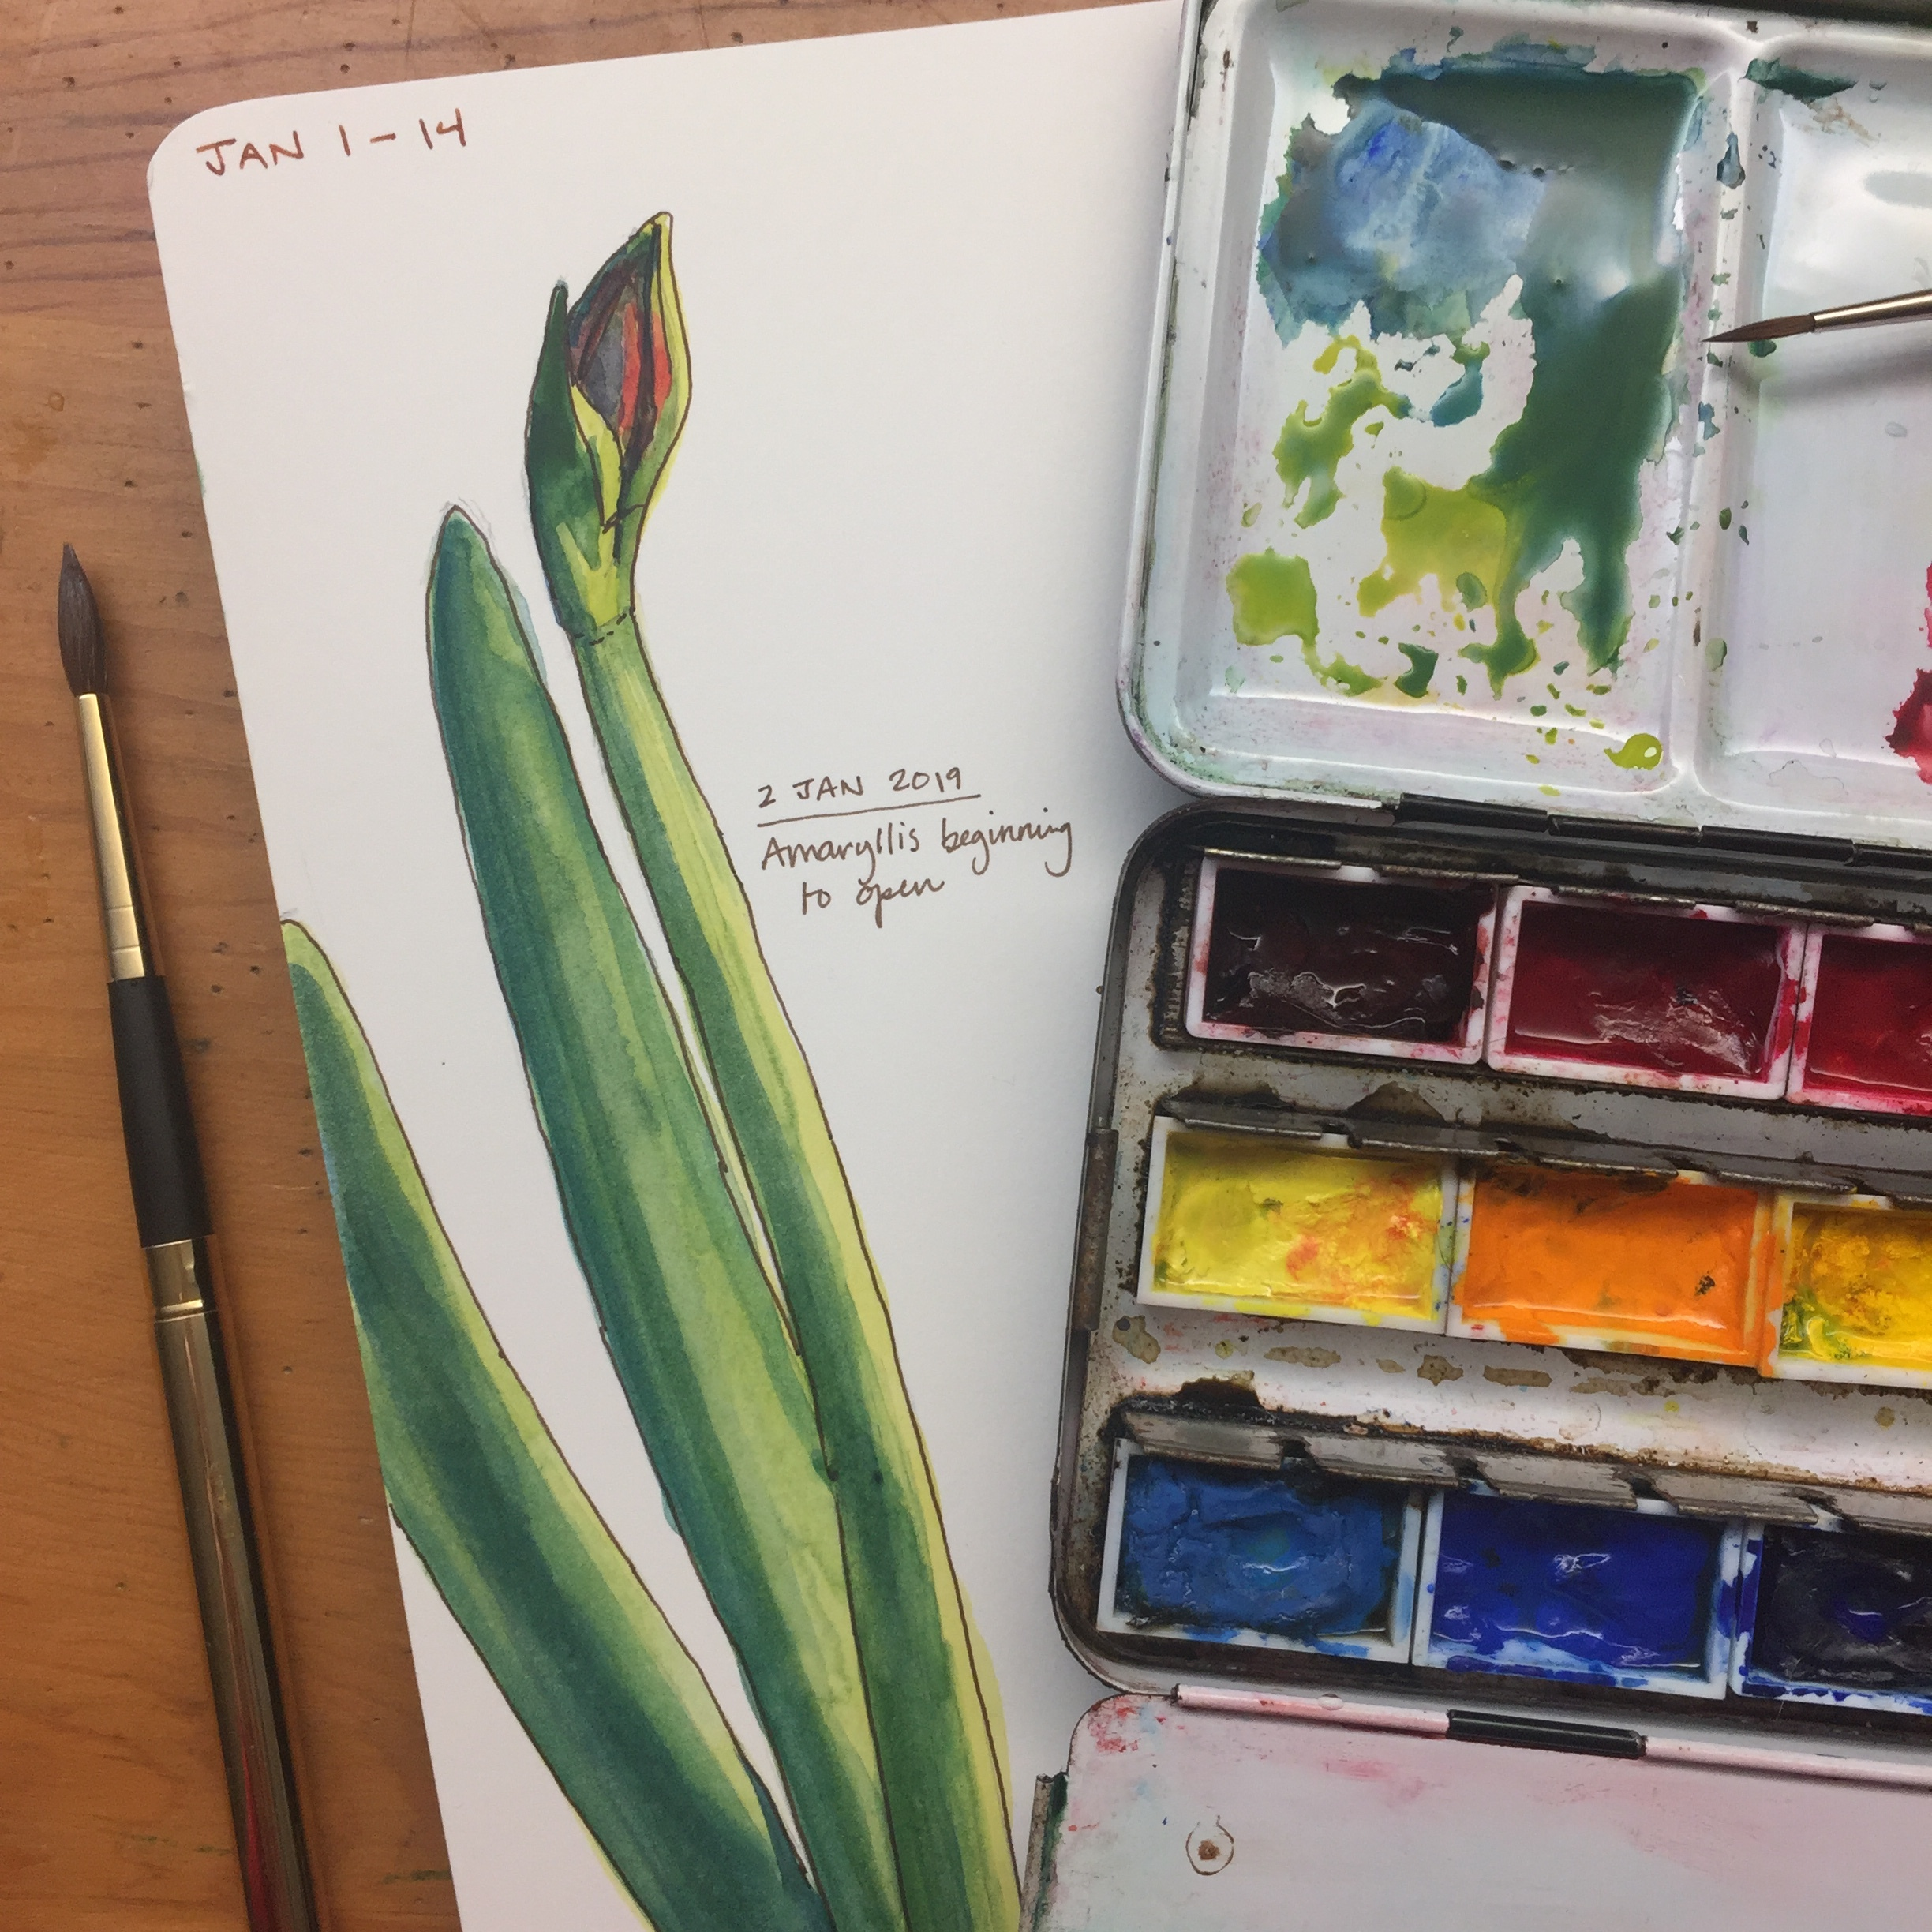 Day 2 (2 Jan 2019): Watercolor sketch of amaryllis beginning to open.